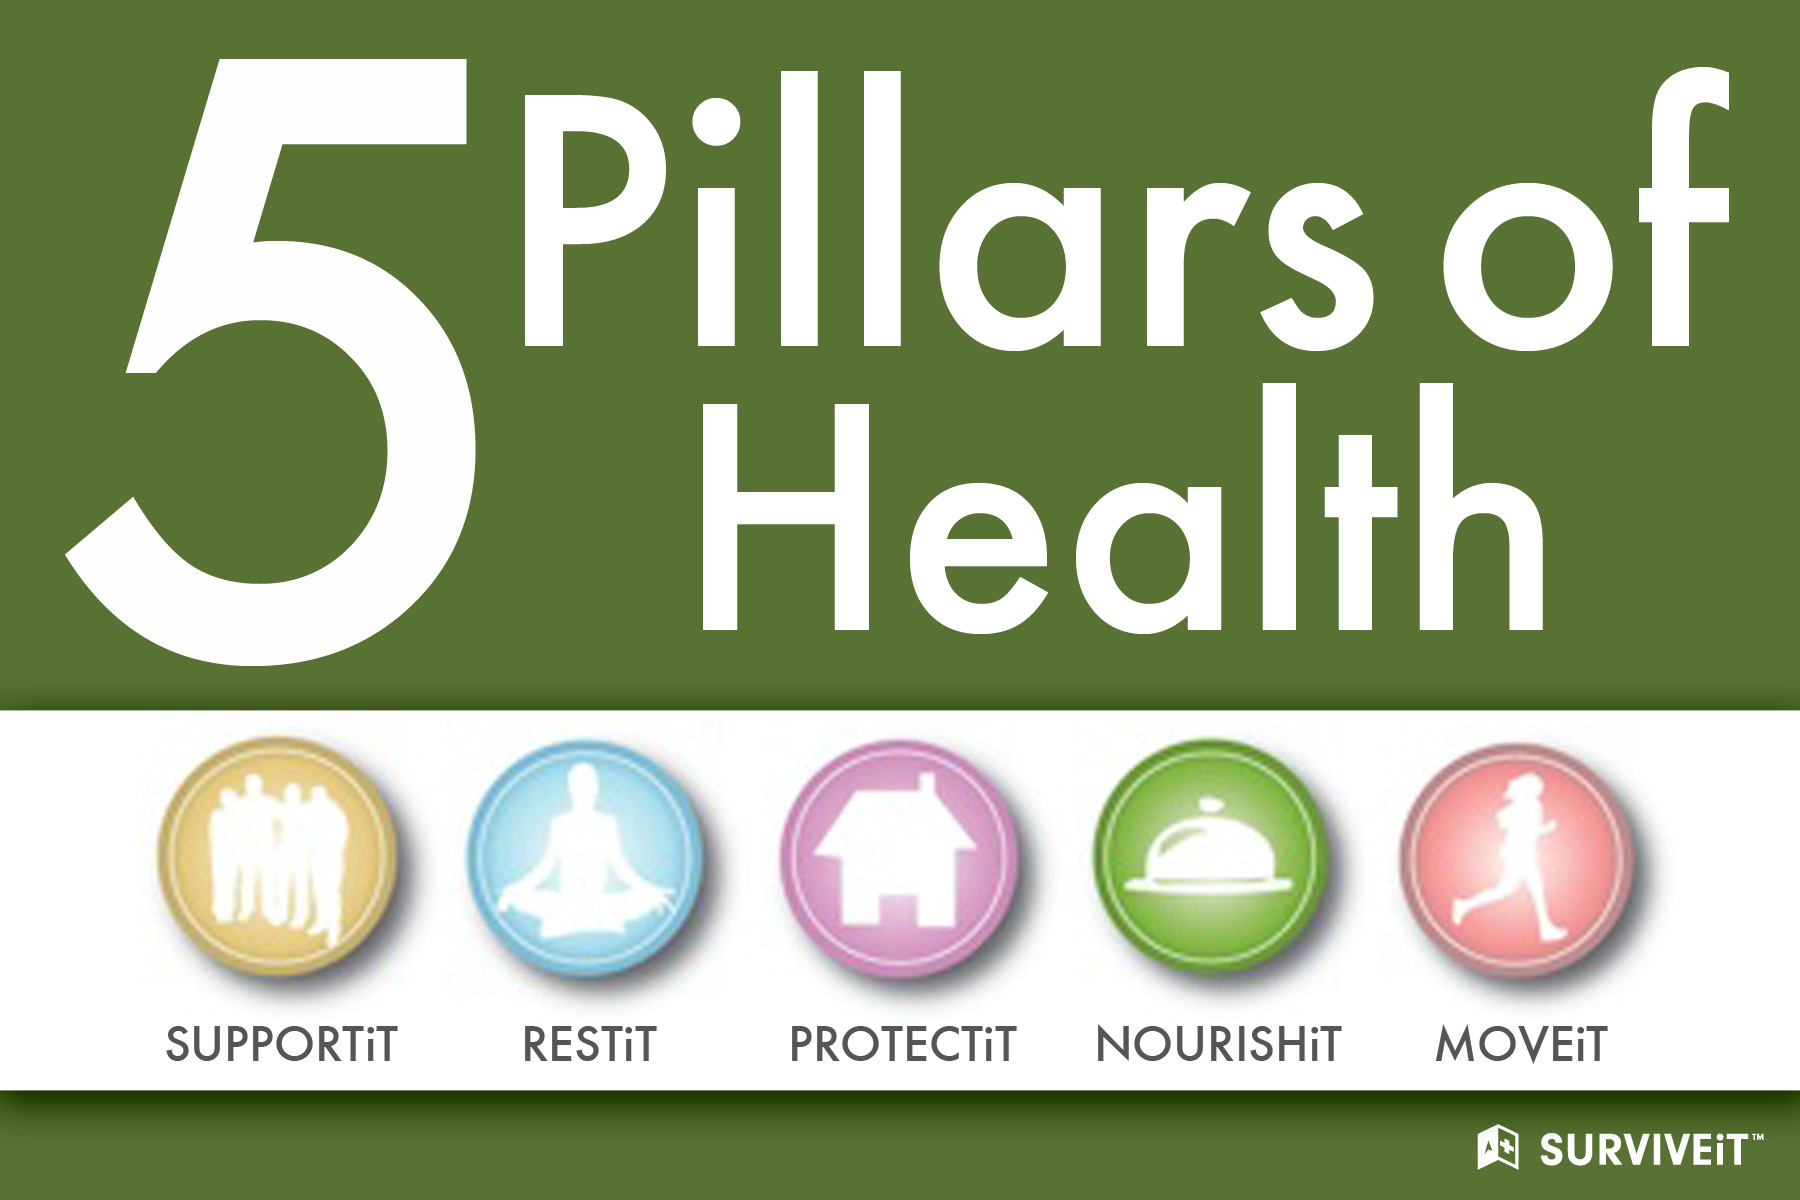 Surviveit S Five Pillars Of Health